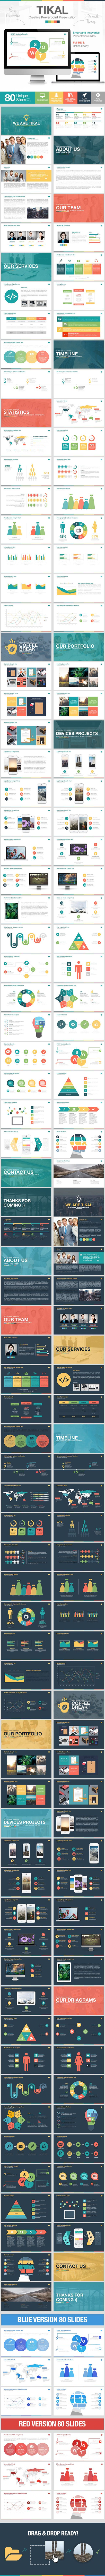 Tikal PowerPoint Presentation Template PowerPoint Template / Theme / Presentation / Slides / Background / Power Point #powerpoint #template #theme